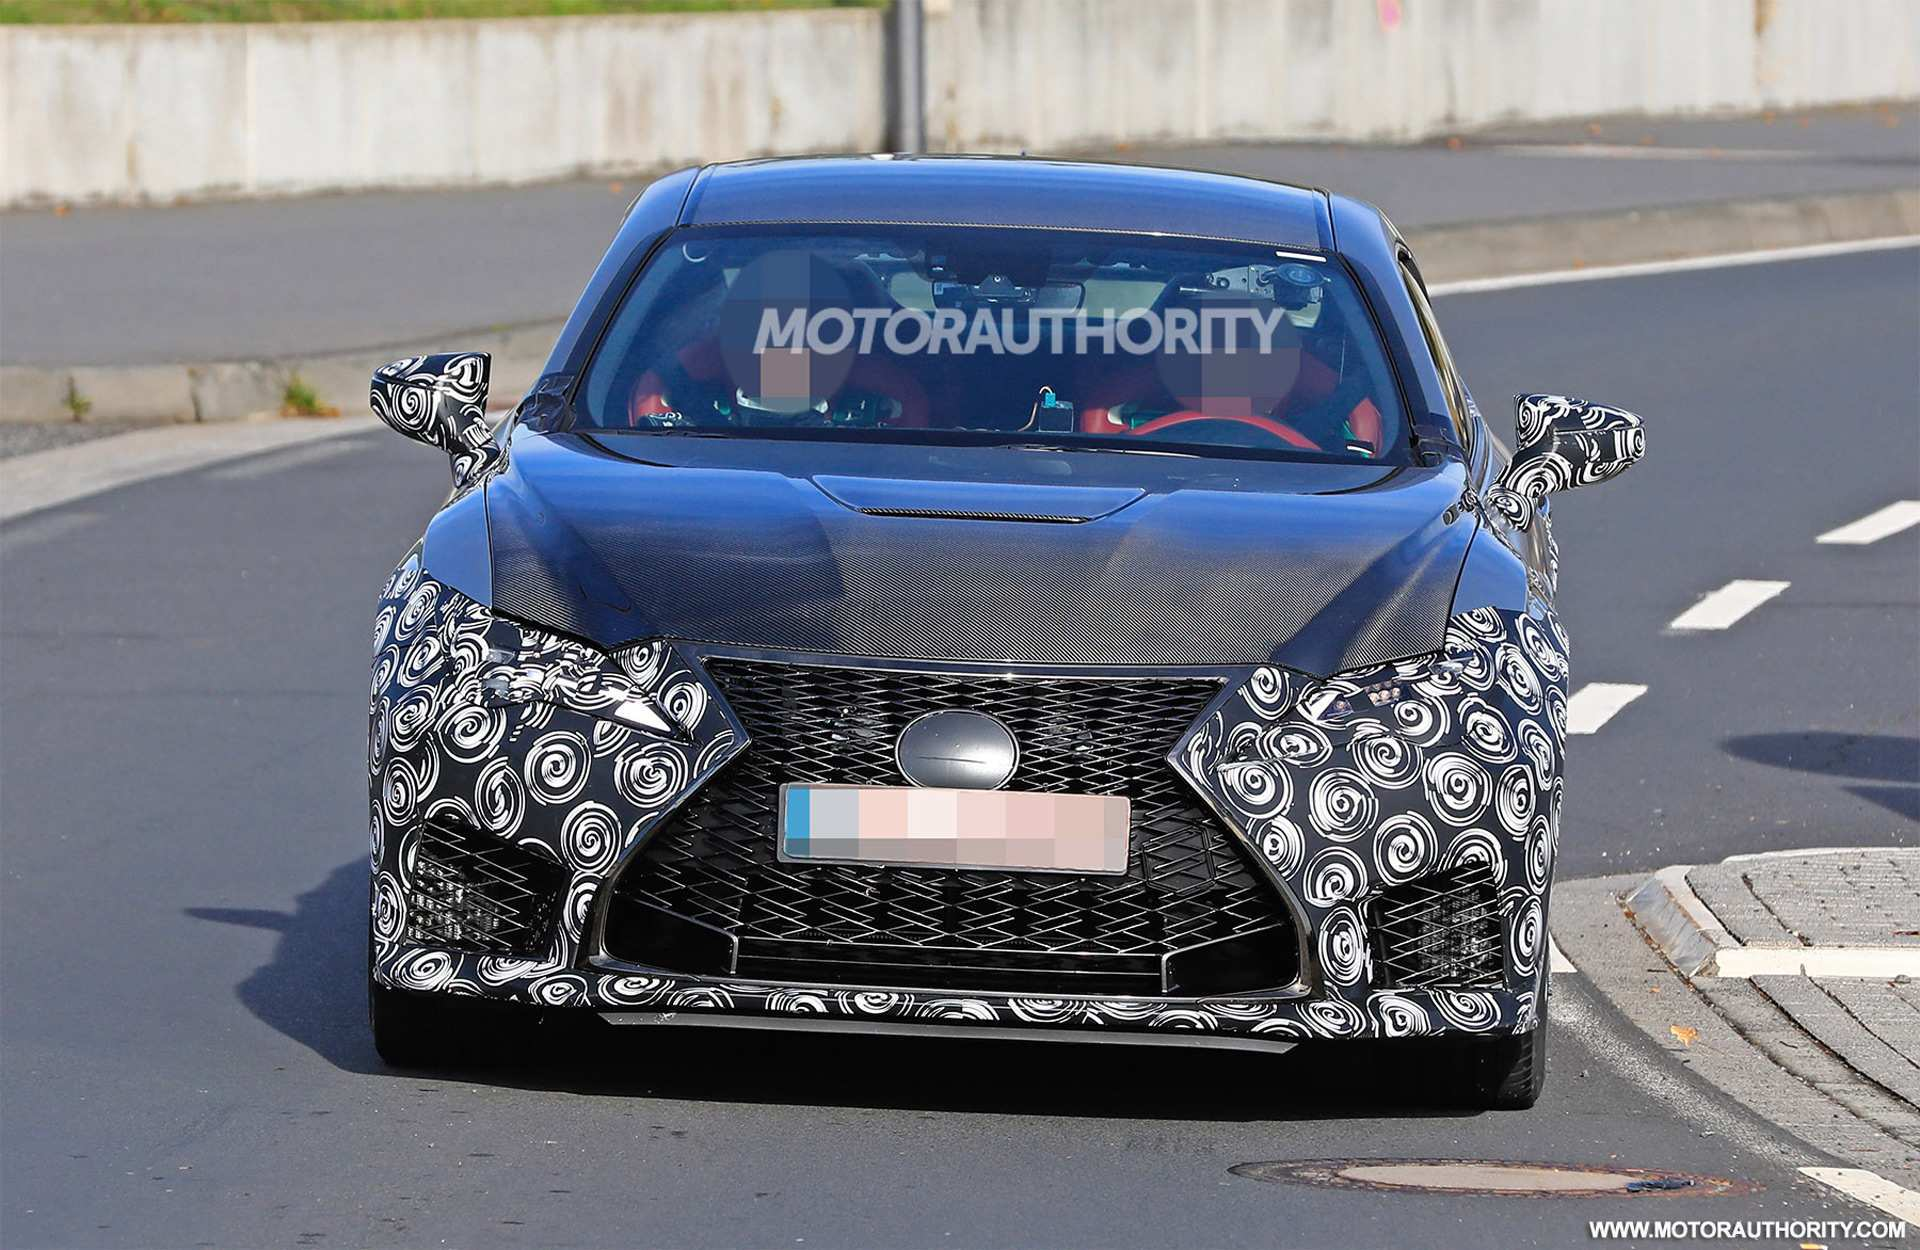 82 New Lexus Is 2020 Spy Shots Rumors by Lexus Is 2020 Spy Shots